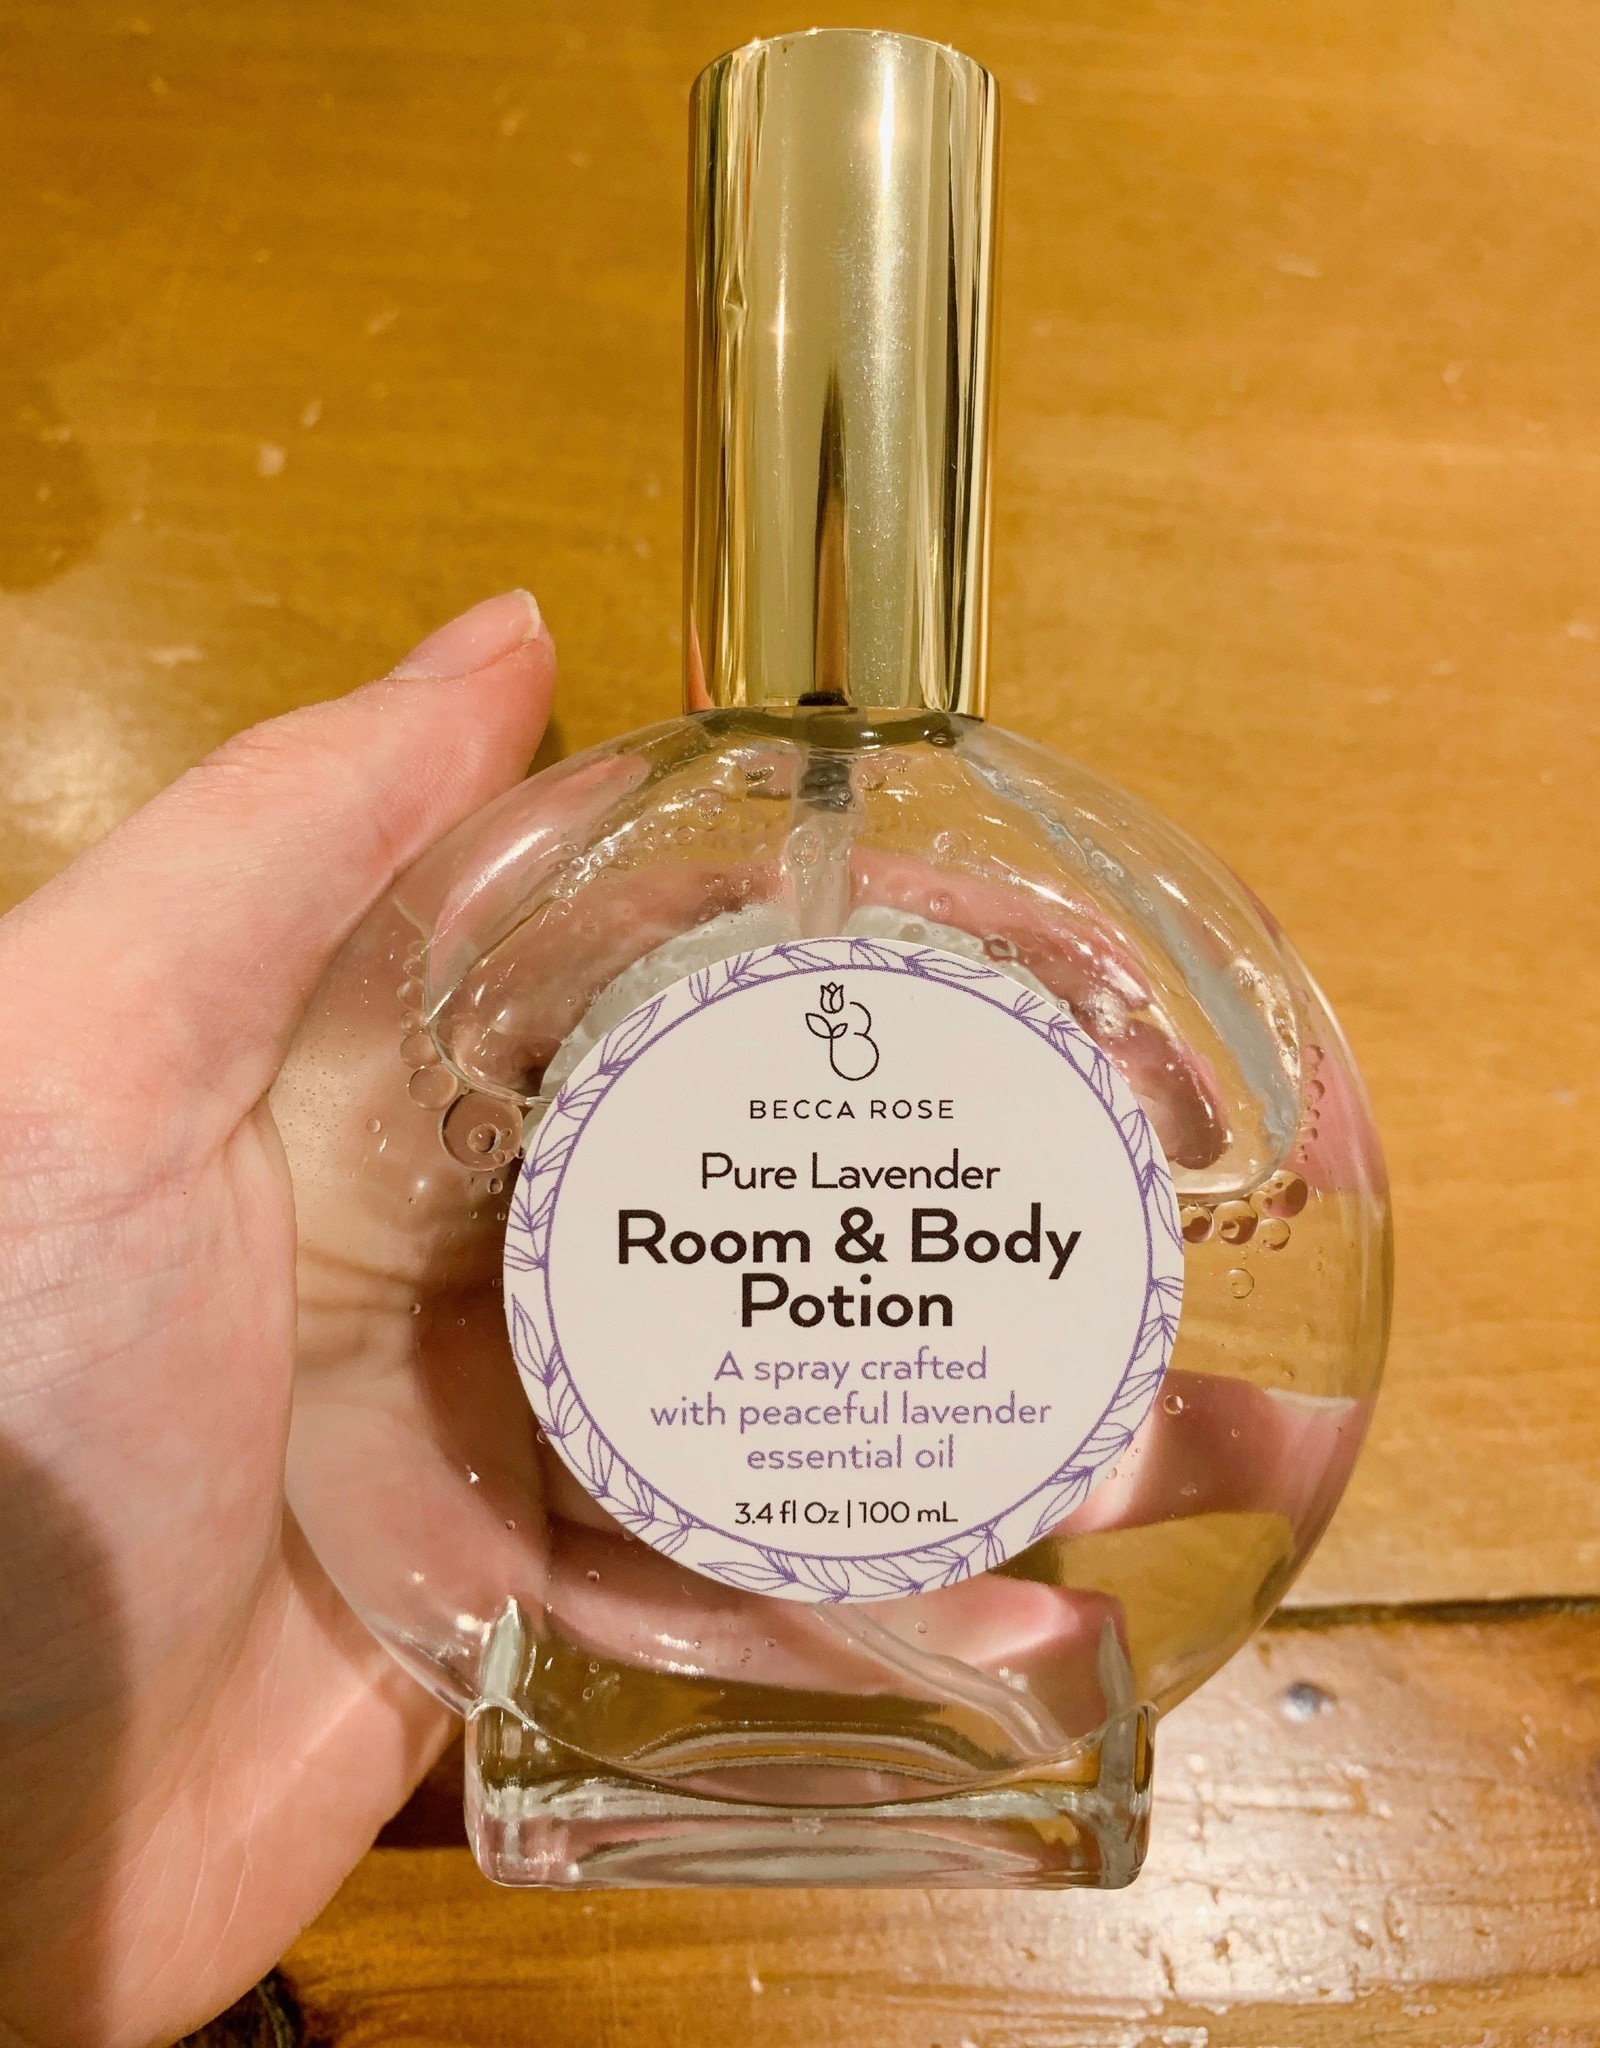 Becca Rose Pure Lavender Room & Body Potion